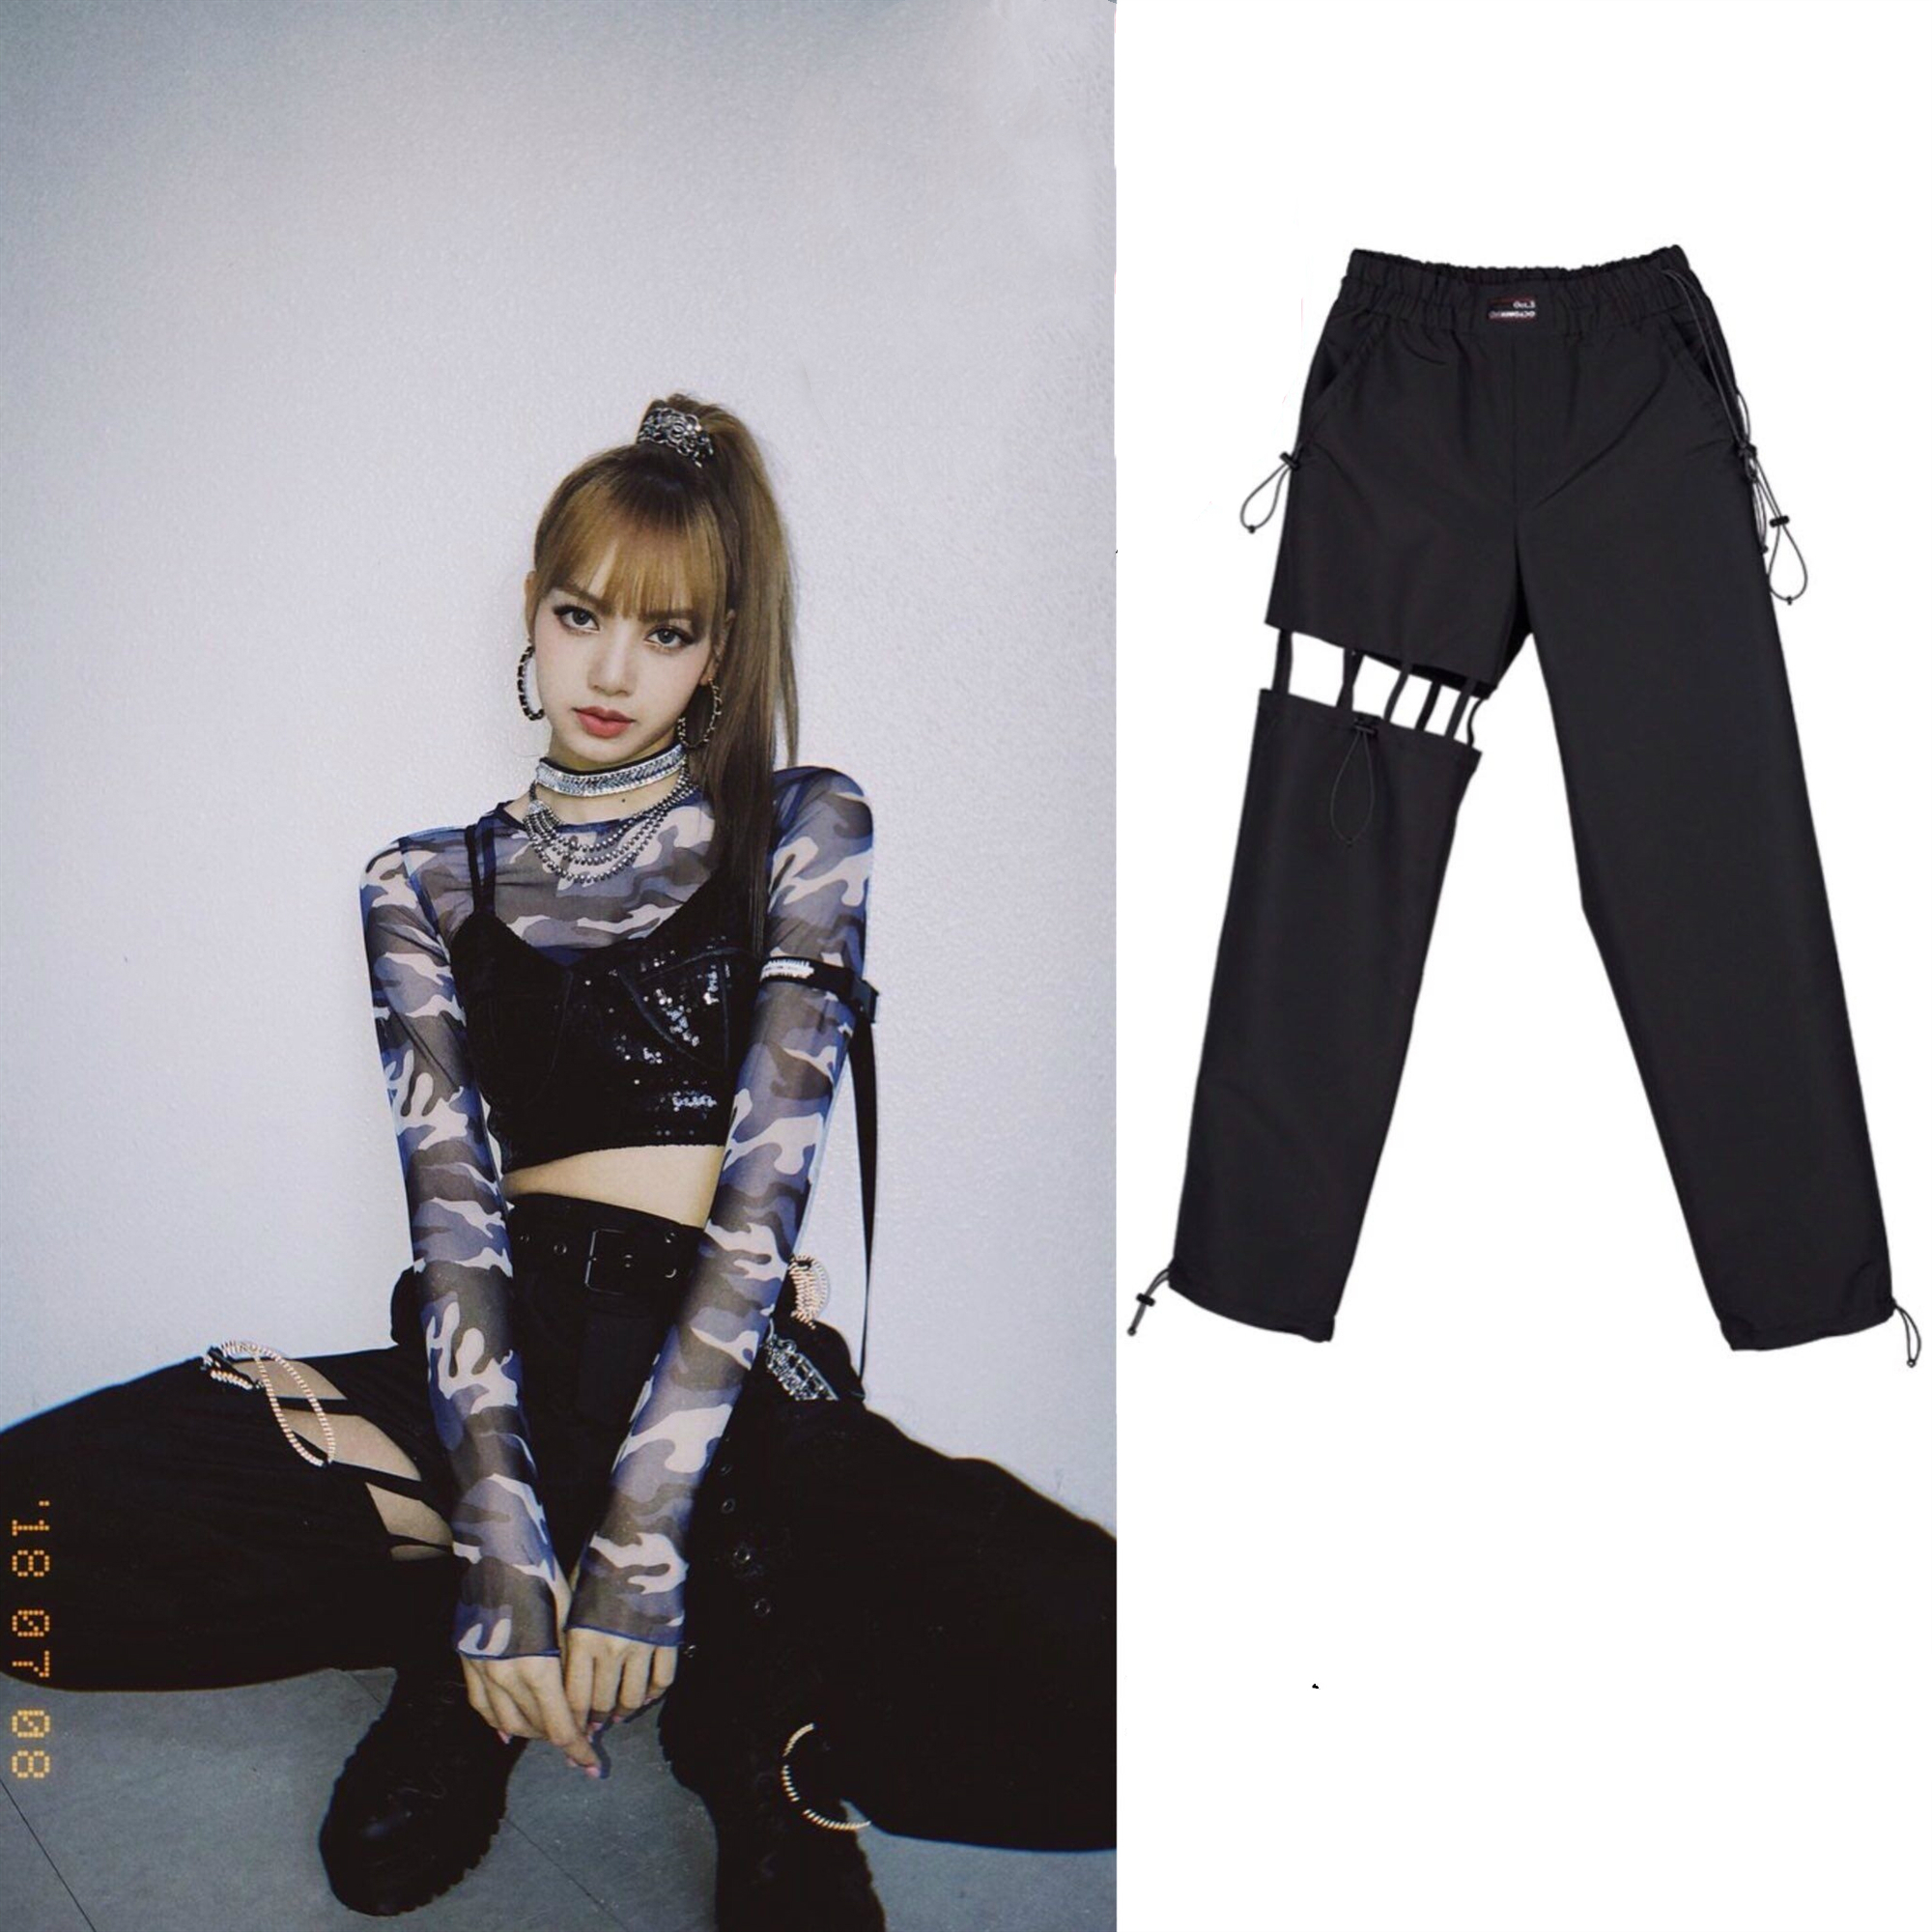 Harajuku New BLACKPINK LISA The Same High Waist Pants Women Casual Streetwear Summer Korean Trousers Female Fans Sexy Sweatpants